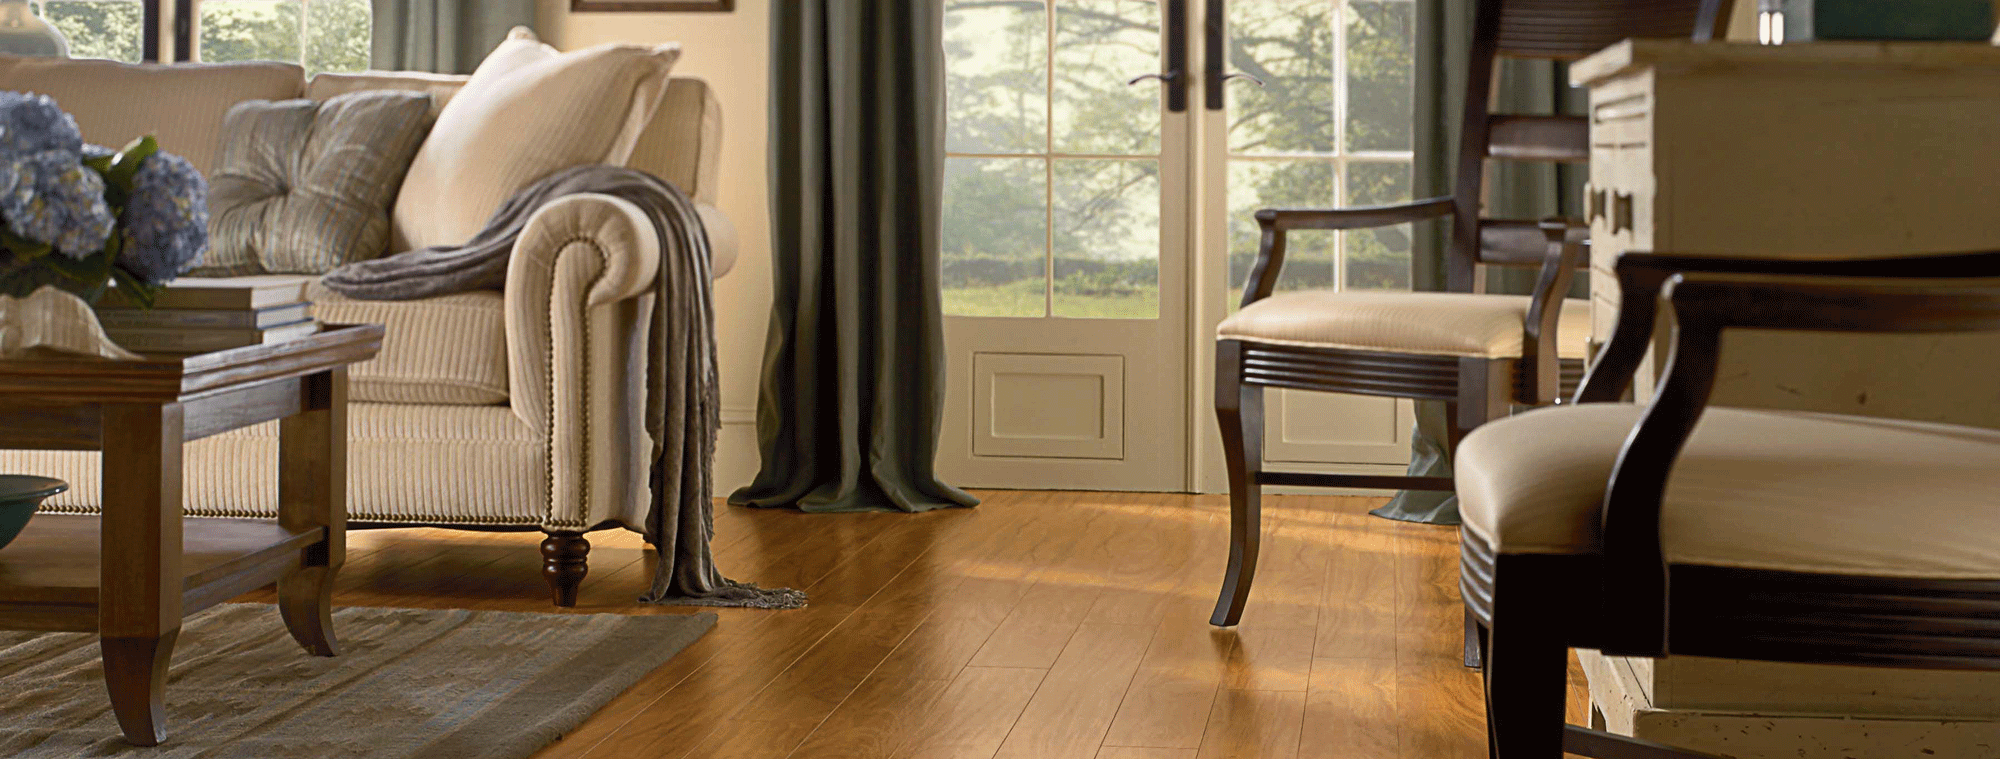 New Laminate Can Add Exactly The Comfort And Elegance That You Want In Your Home Accenting S Other Design Elements